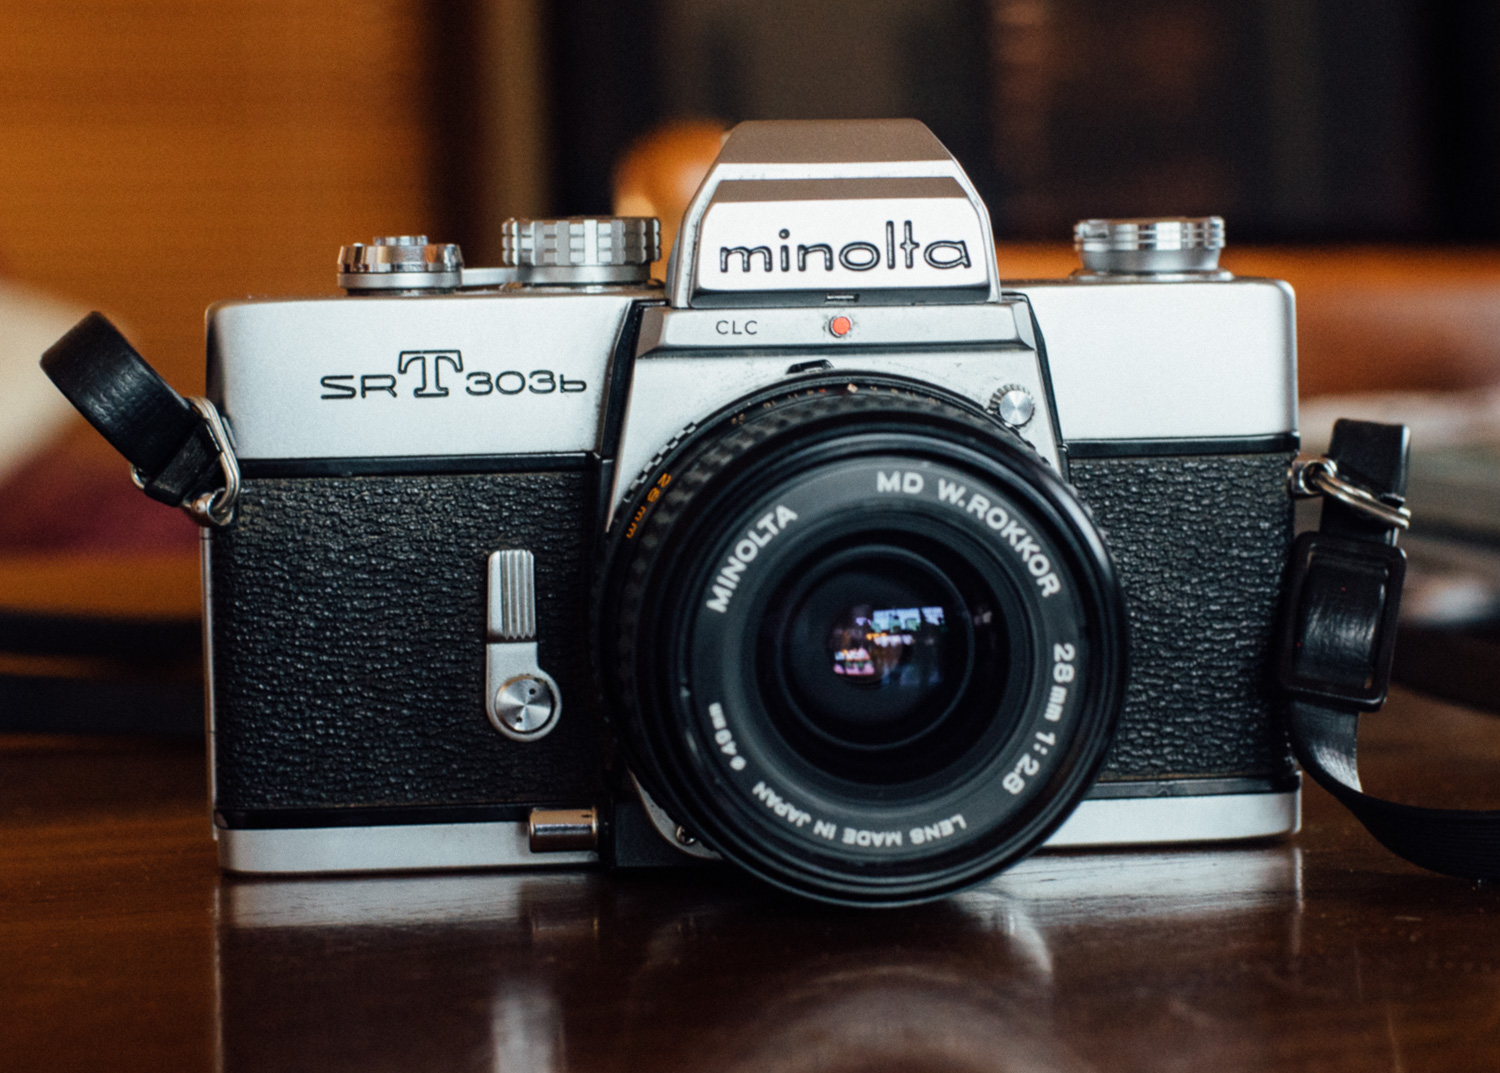 Beautiful and sparse, the Minolta SRT 303b. No gimmicks just all you need basics.